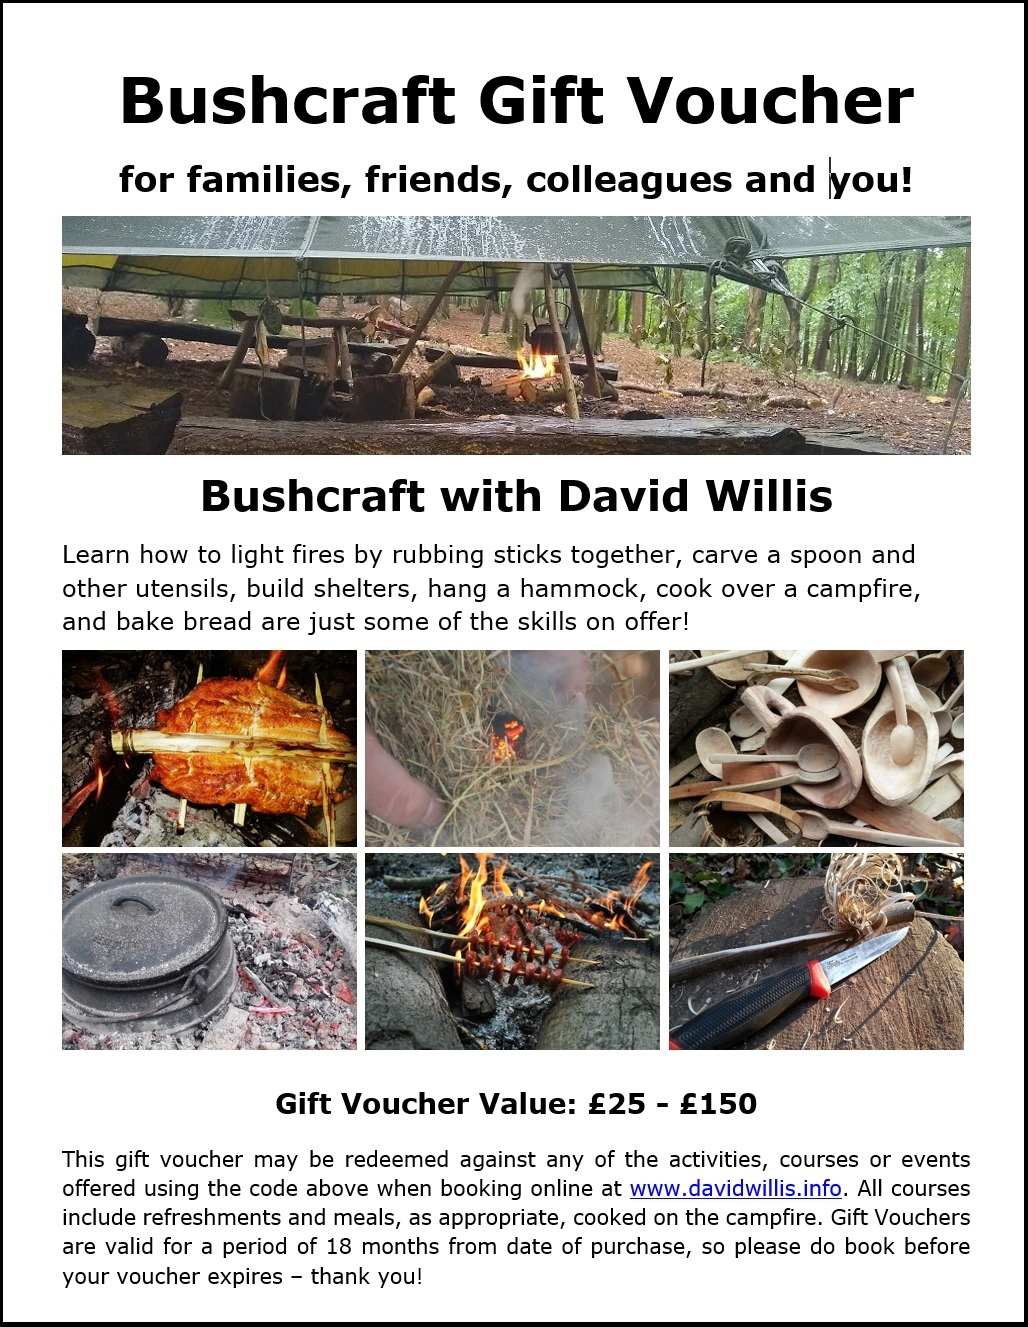 Gift Voucher for Bushcraft Courses